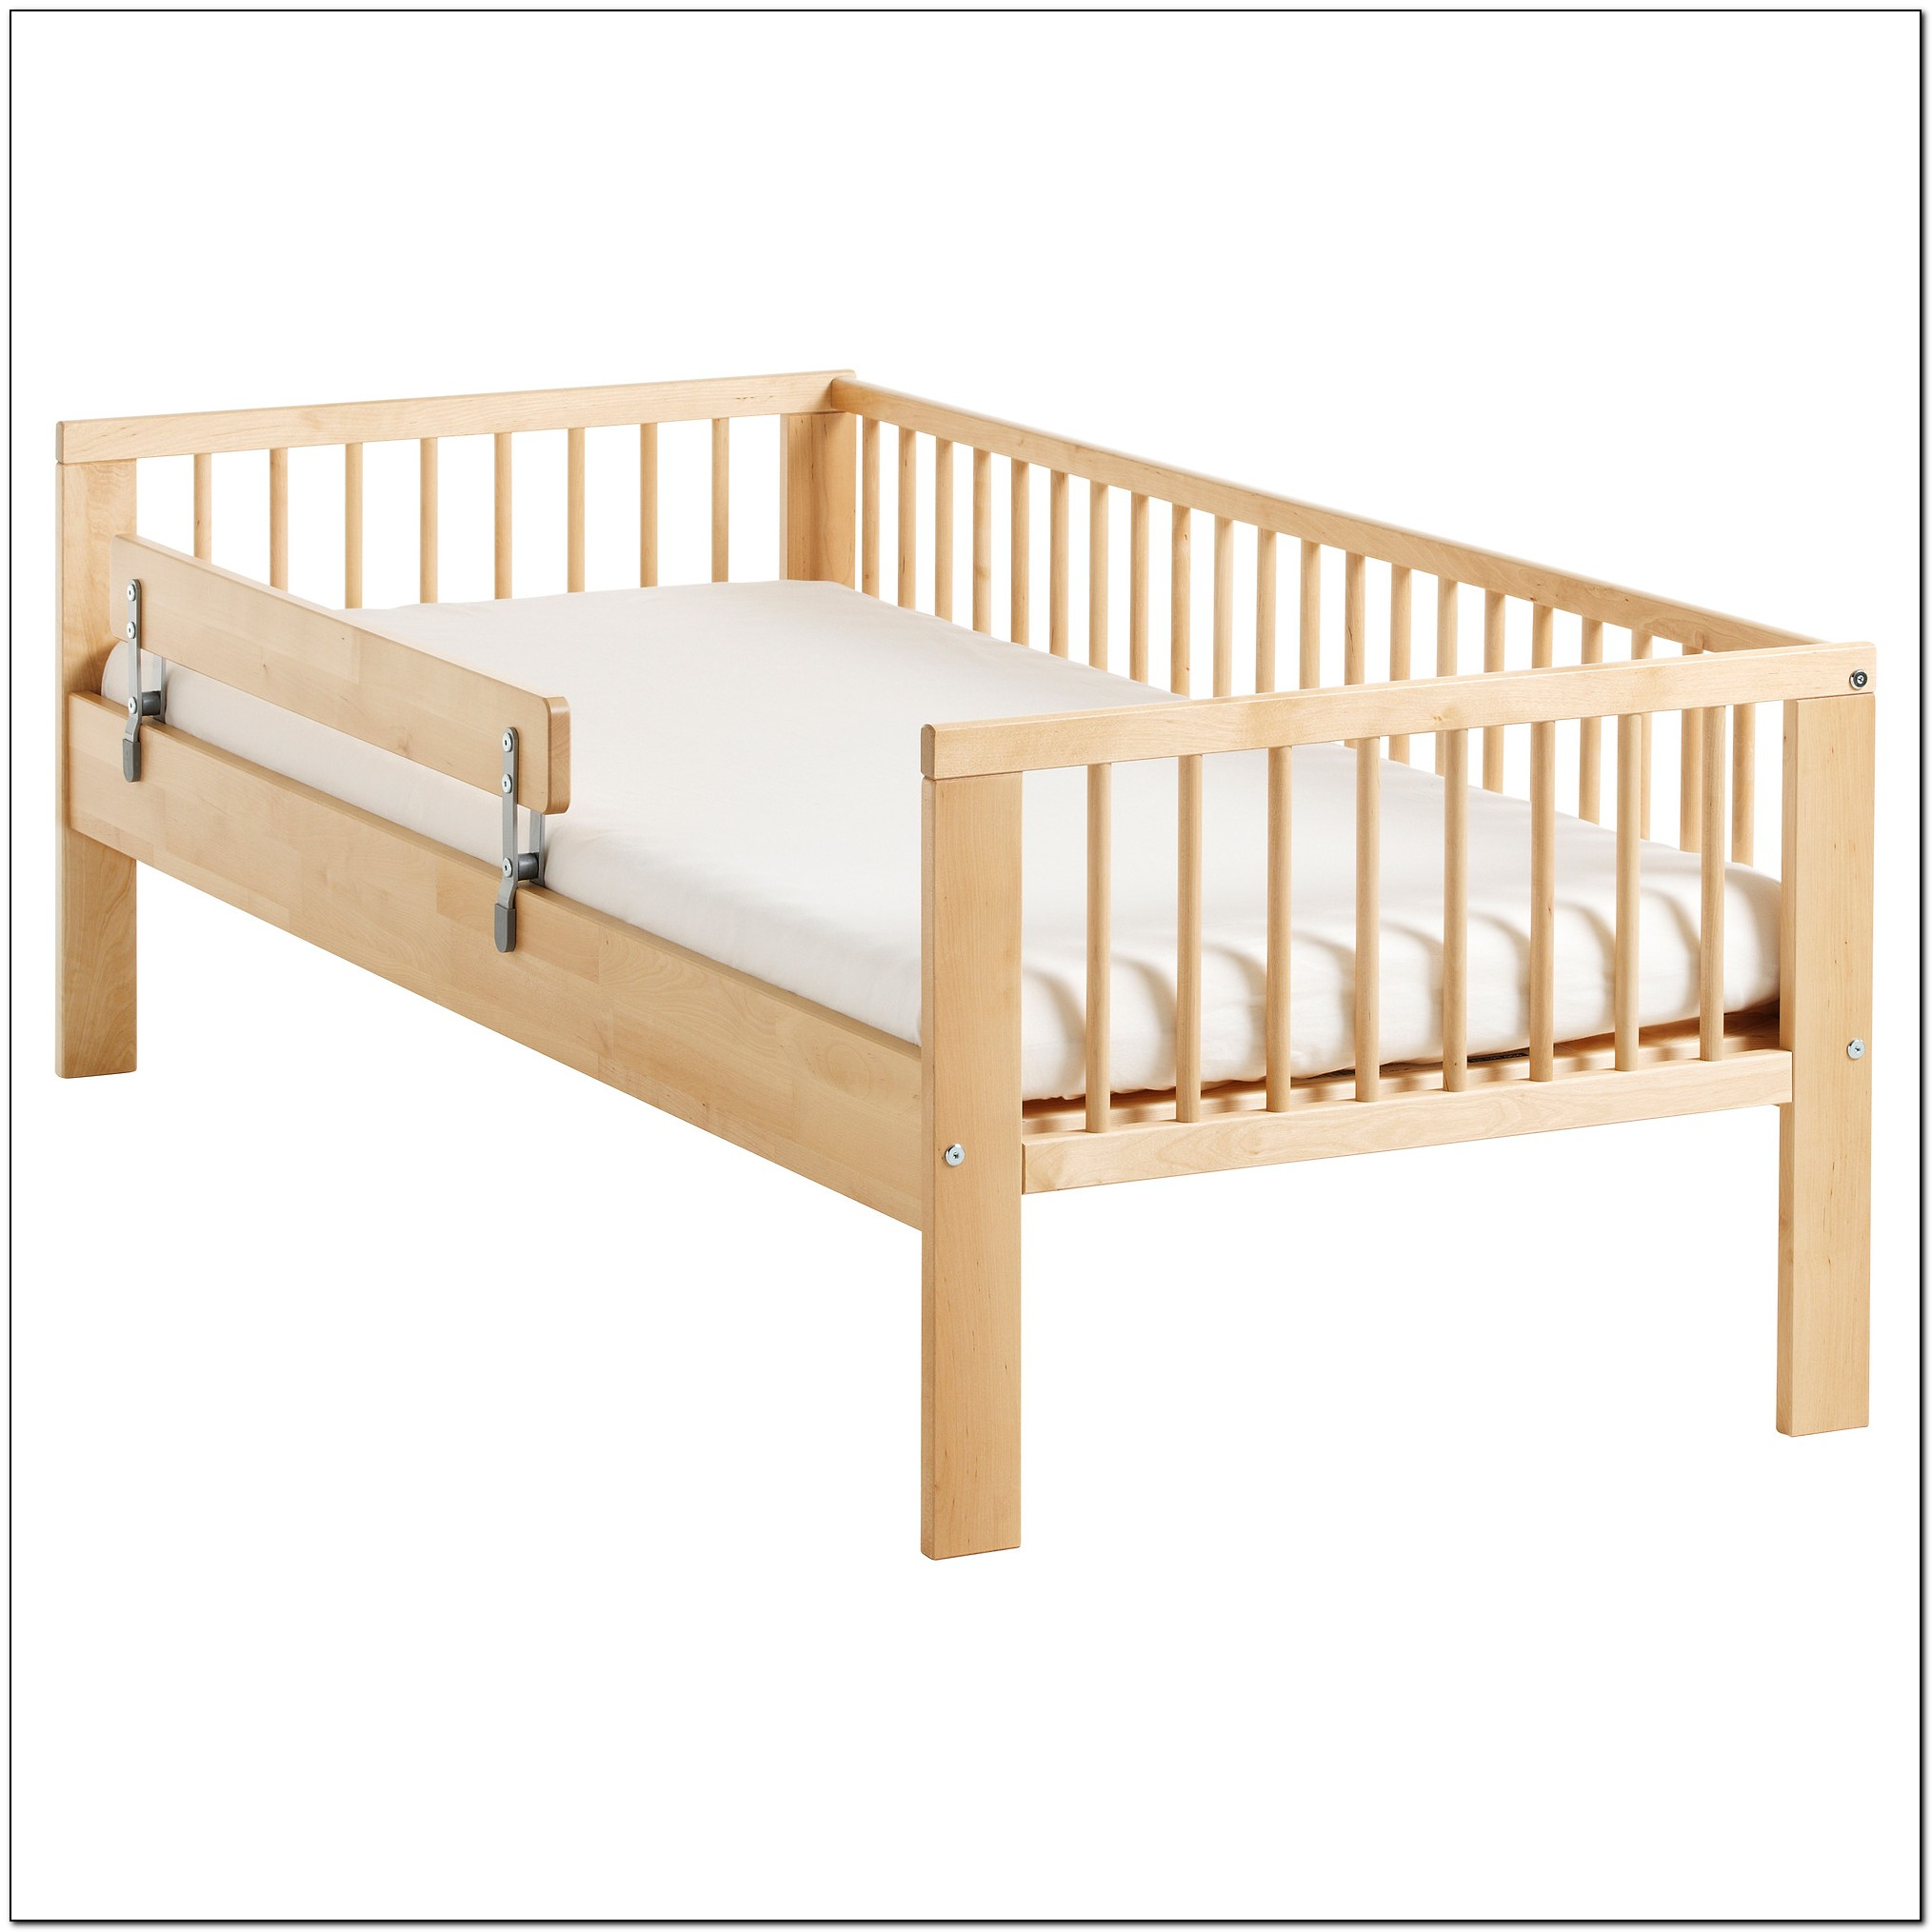 ikea toddler bed rail download page home design ideas galleries home design ideas guide. Black Bedroom Furniture Sets. Home Design Ideas